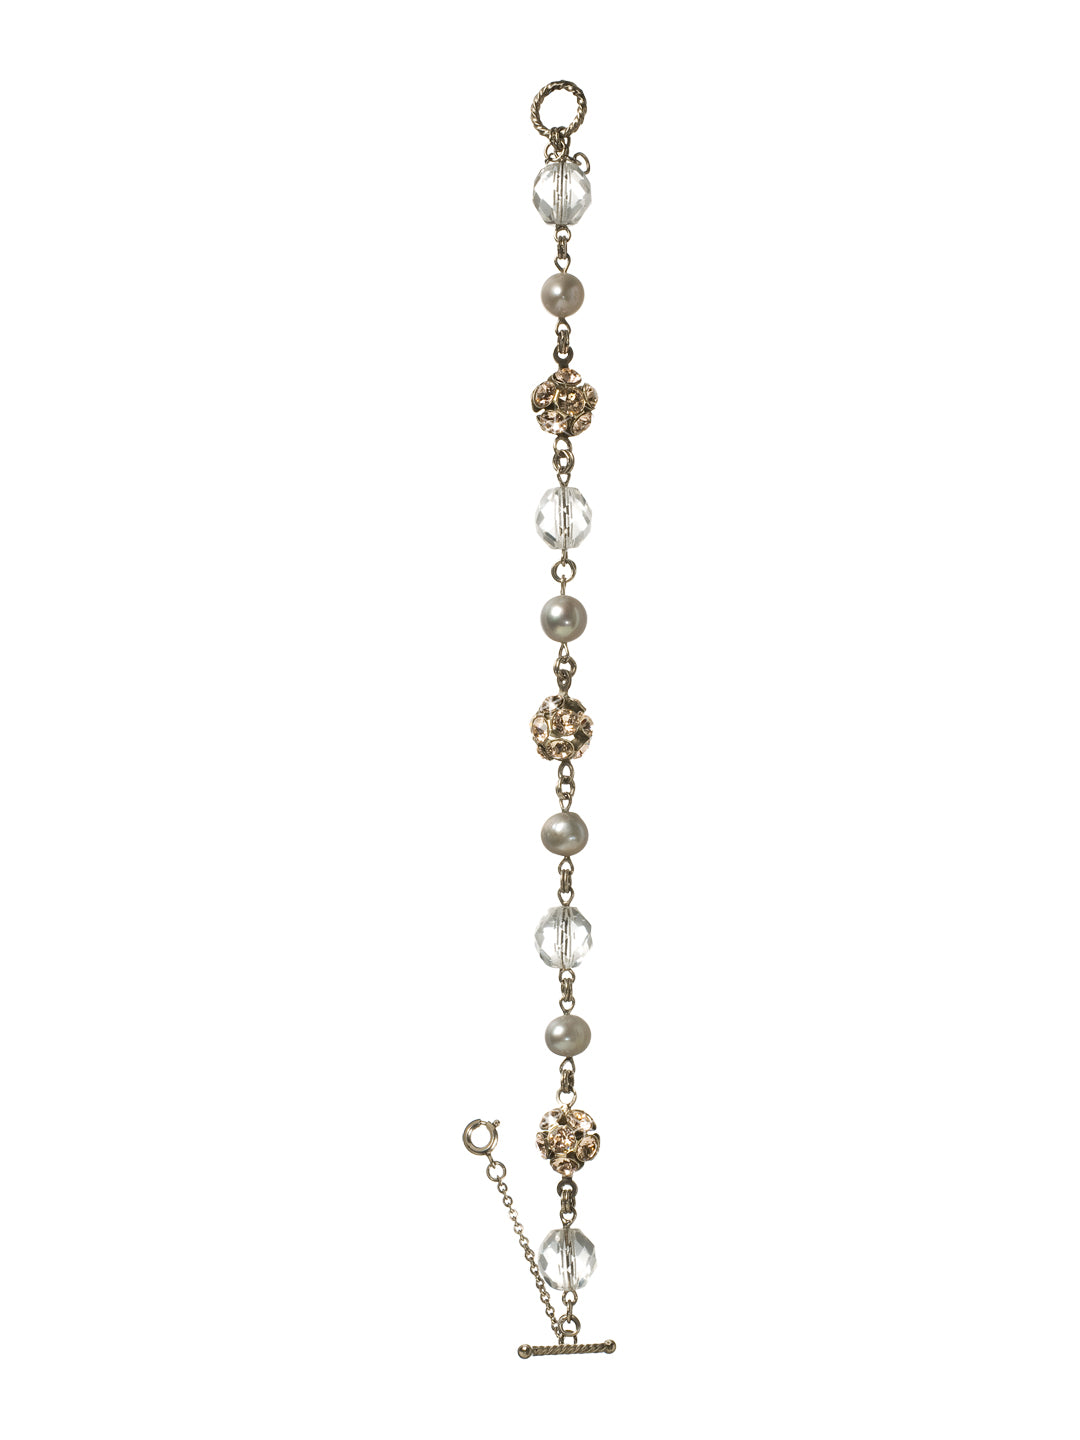 Delicate Bead and Crystal Line Tennis Bracelet - BCE16ASSNB